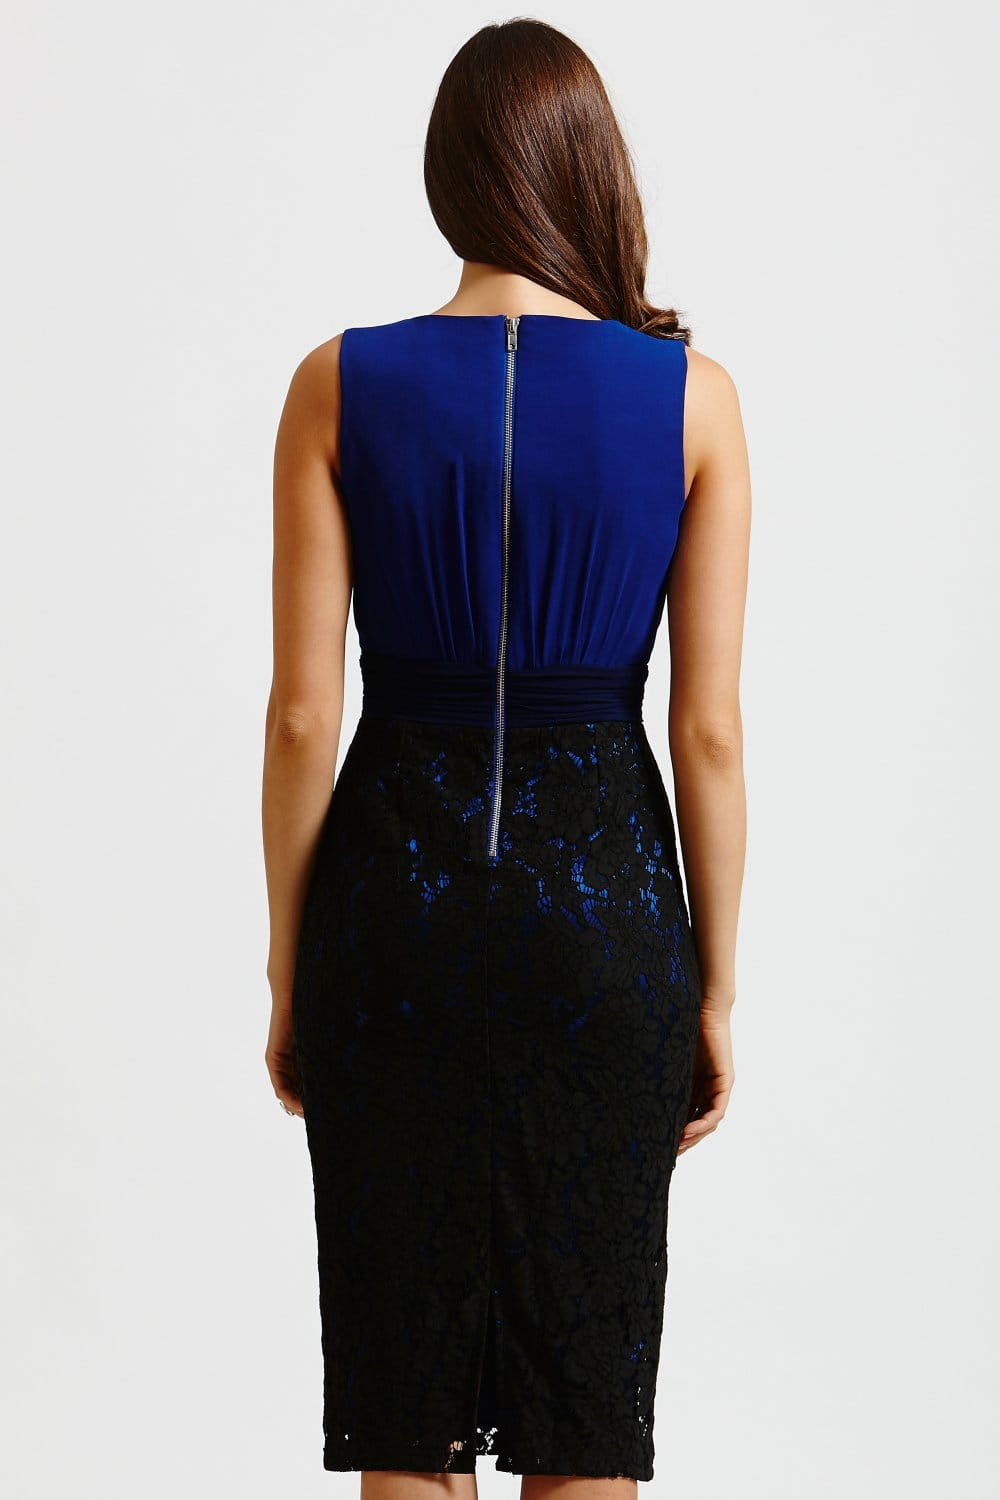 blue and black lace skirt wiggle dress from